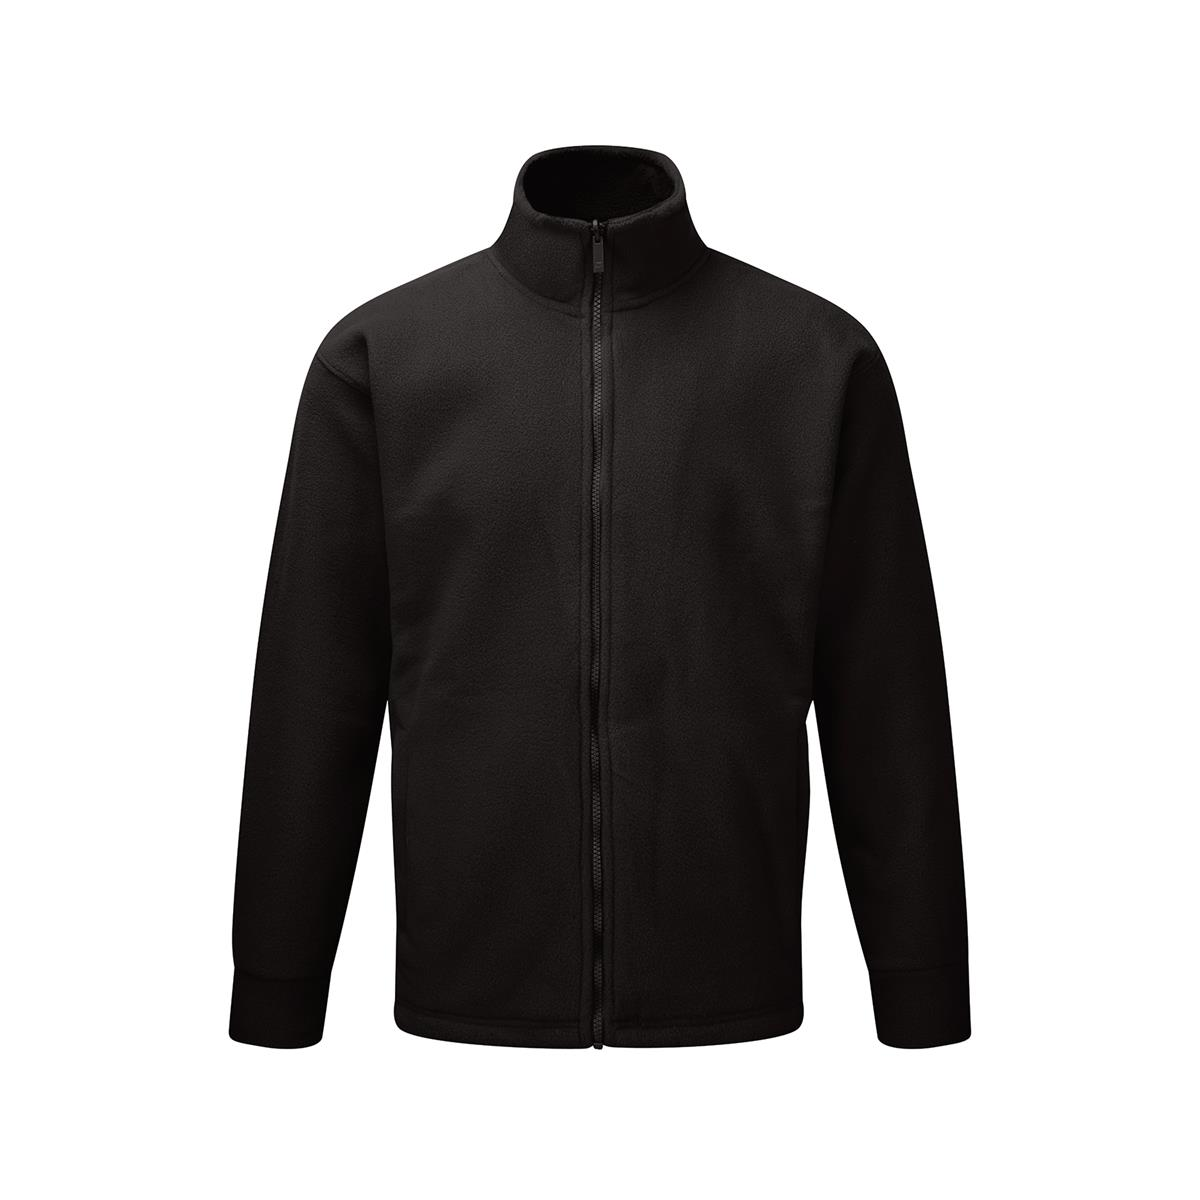 Basic Fleece Jacket Elasticated Cuffs and Full Zip Front Small Black 1-3 Days Lead Time